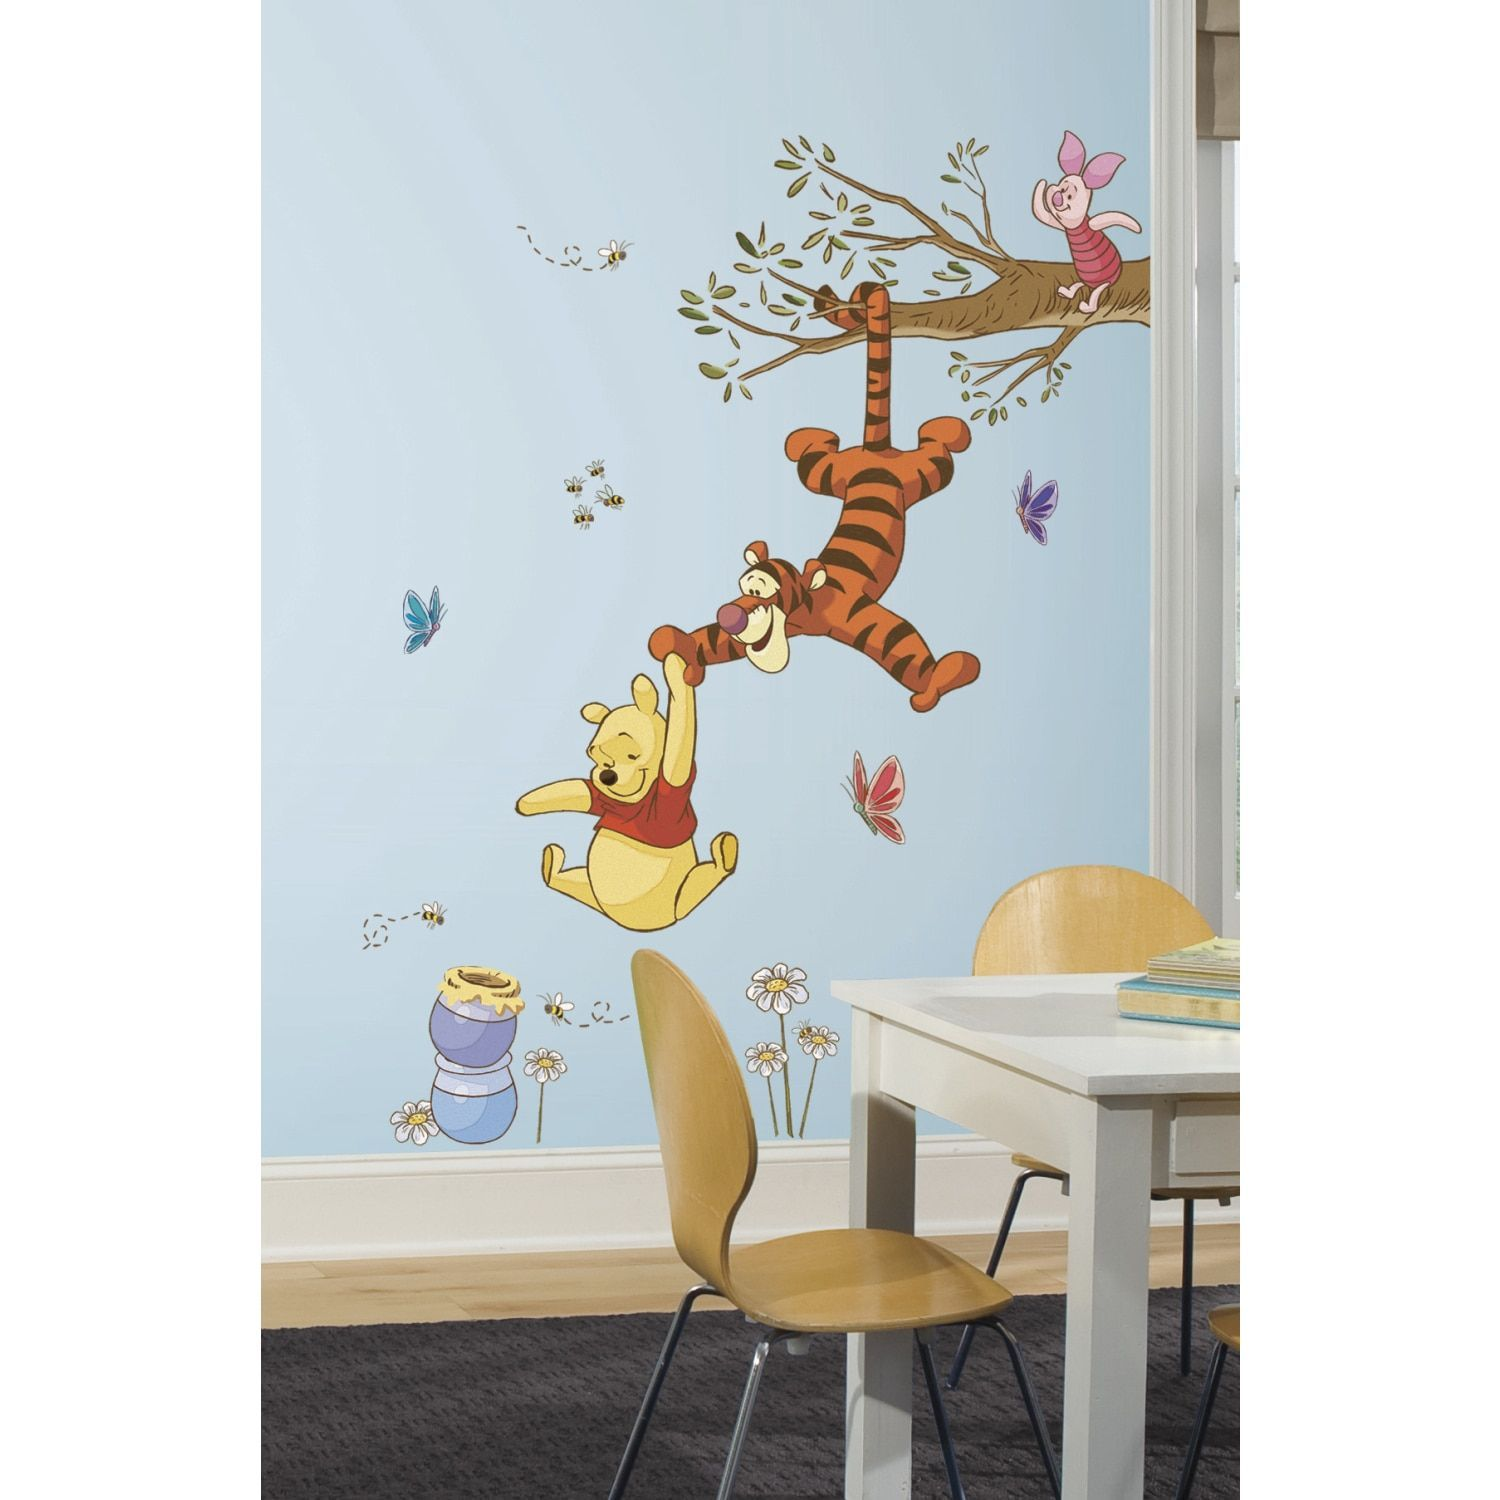 Roommates Winnie The Pooh Swinging For Honey L And Stick Giant Wall Decals